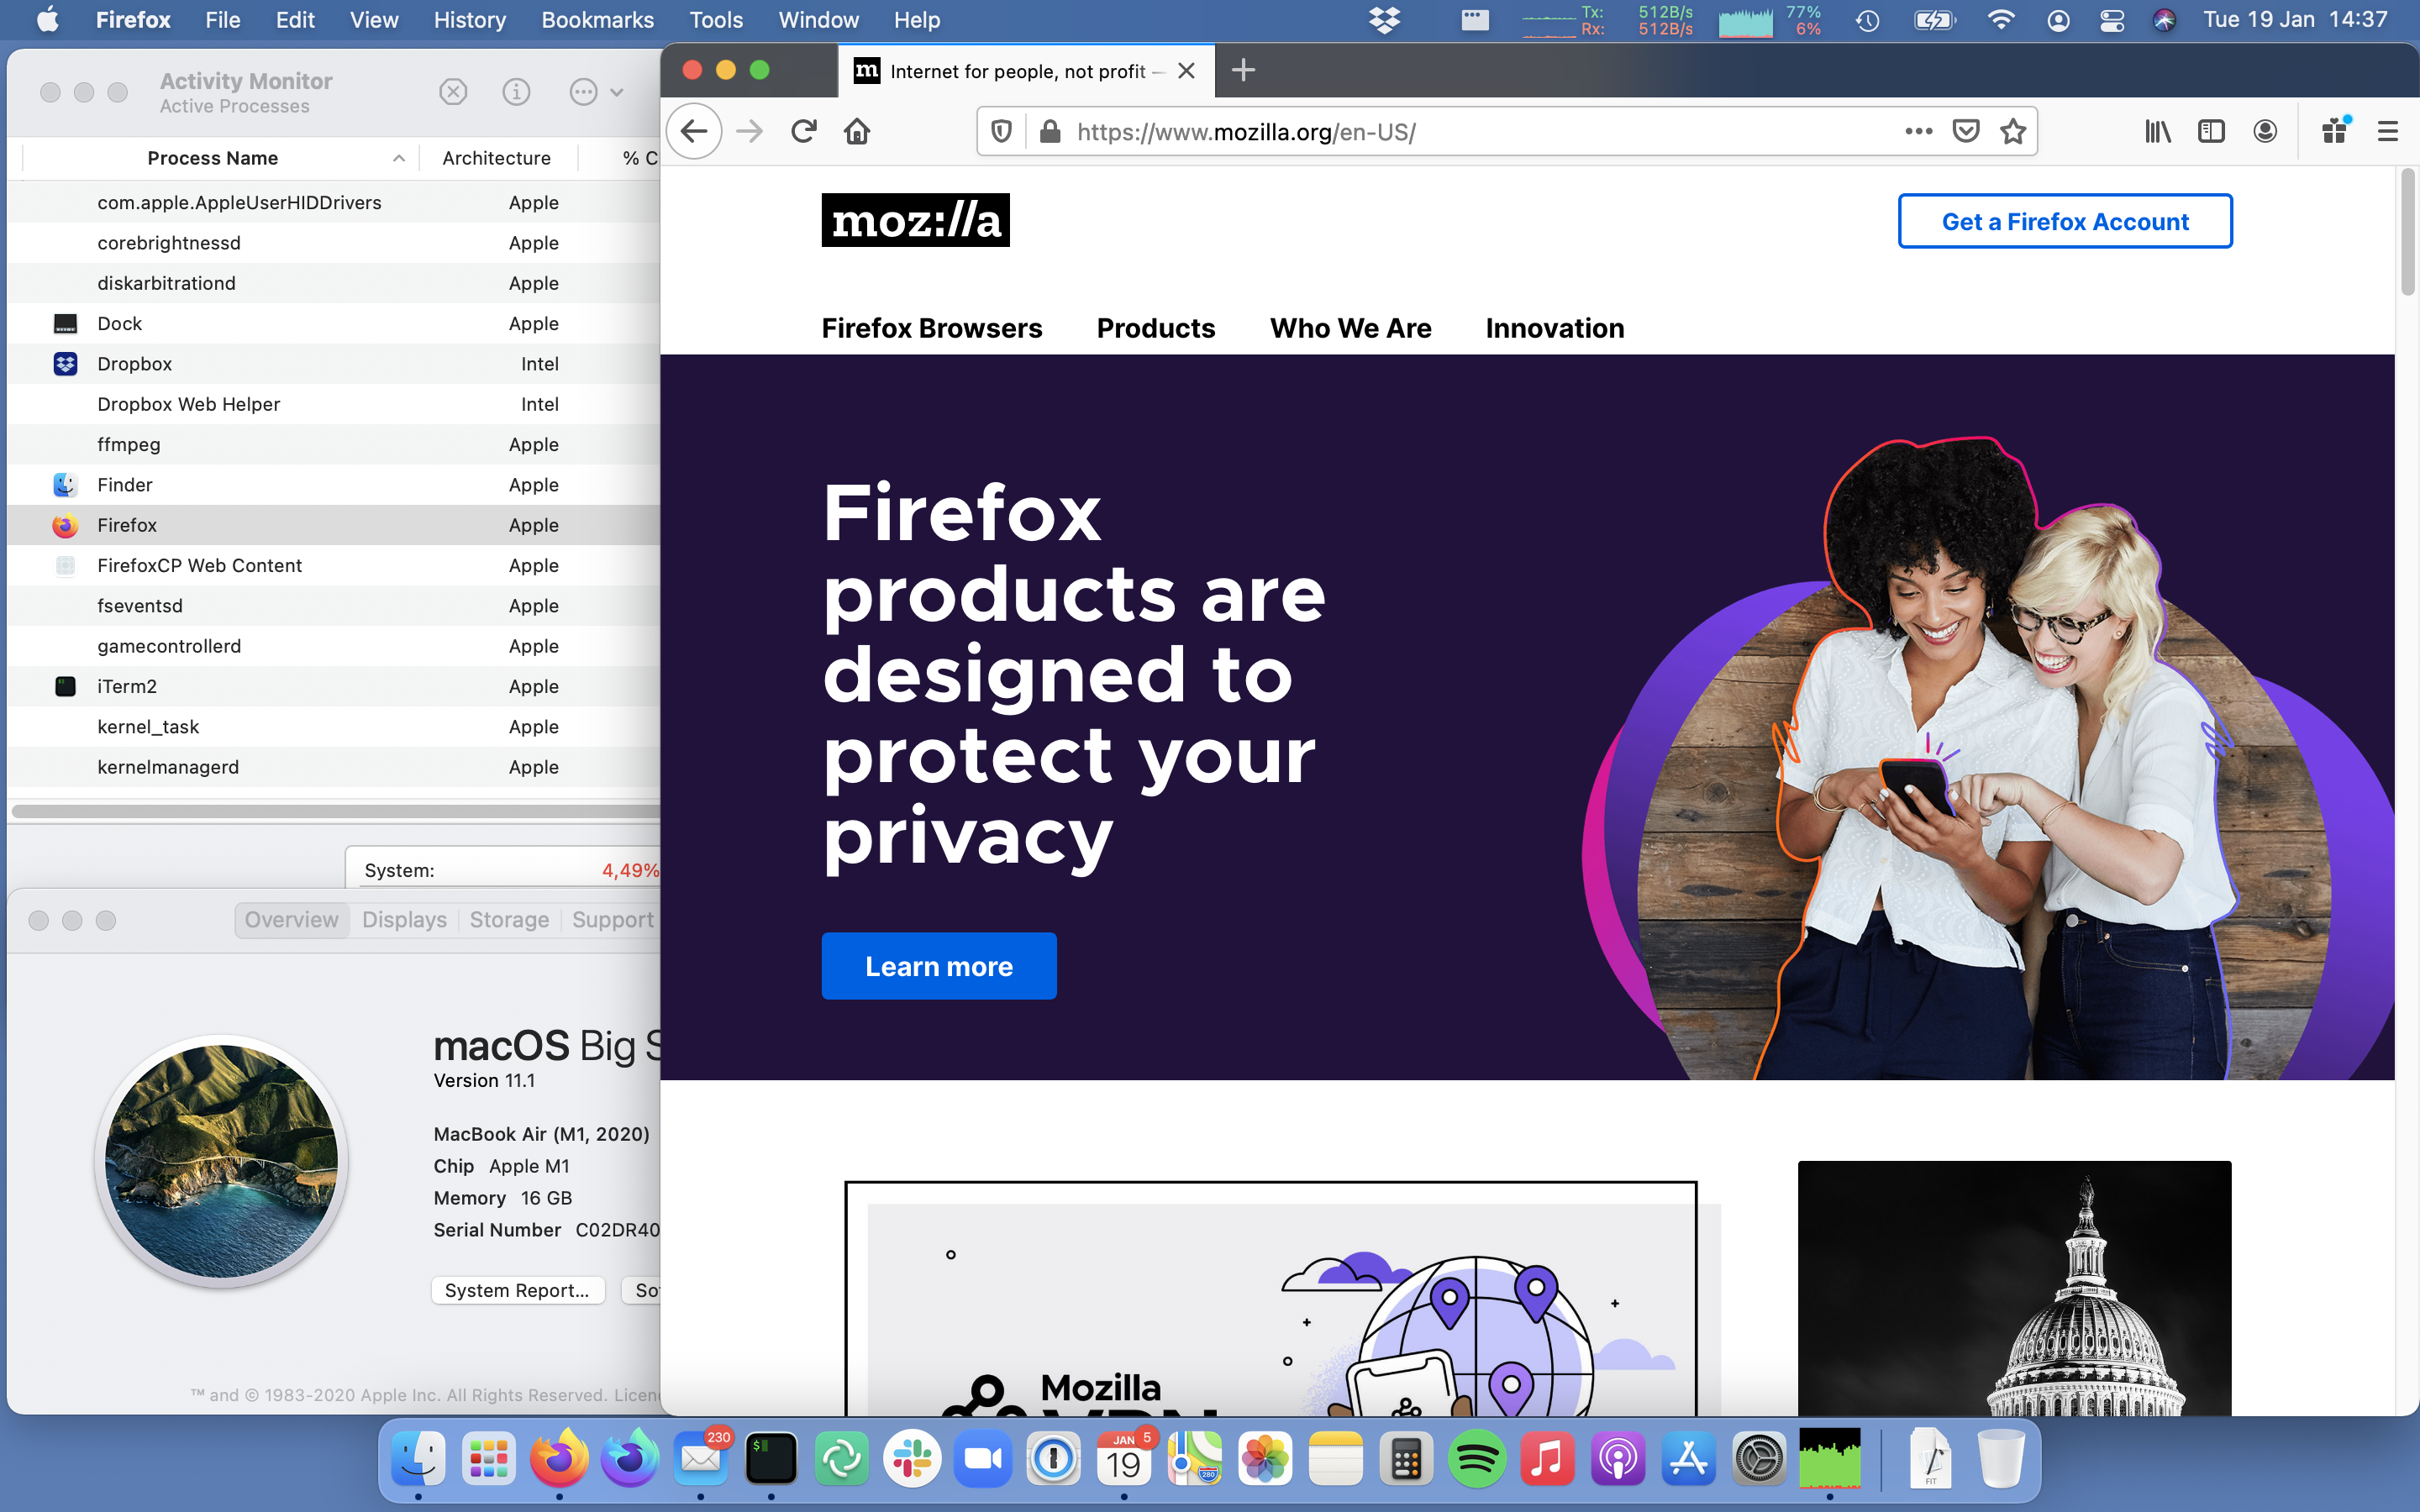 Porting Firefox to Apple Silicon